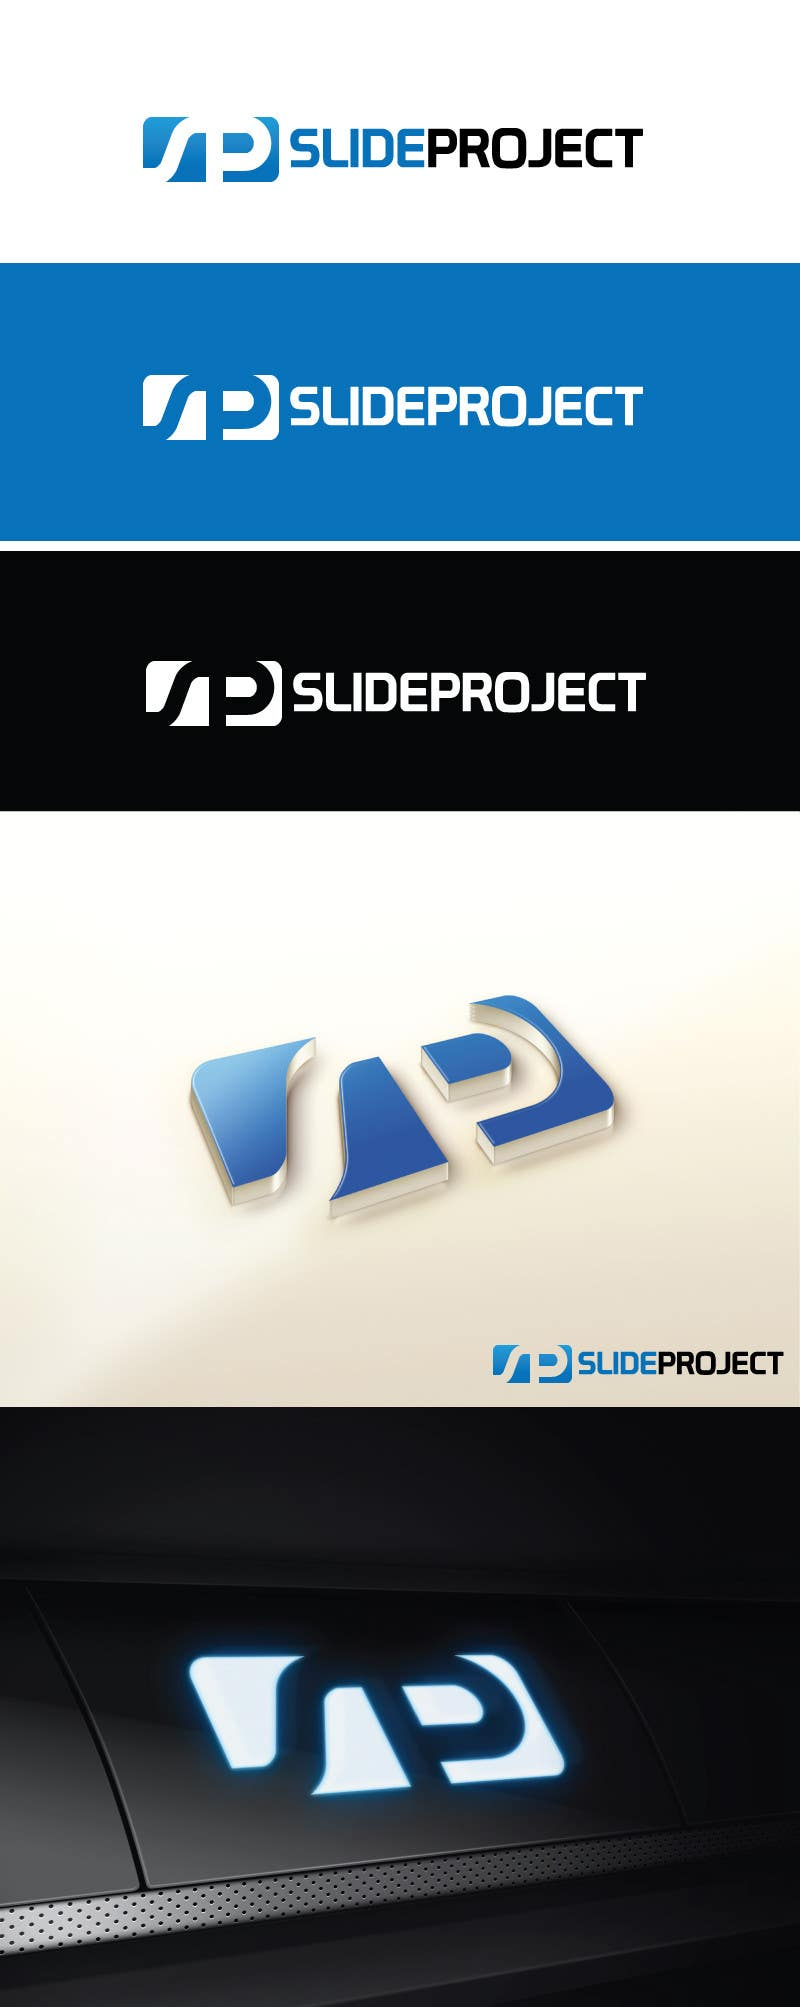 #18 for Design a Logo for New Record Label by hup